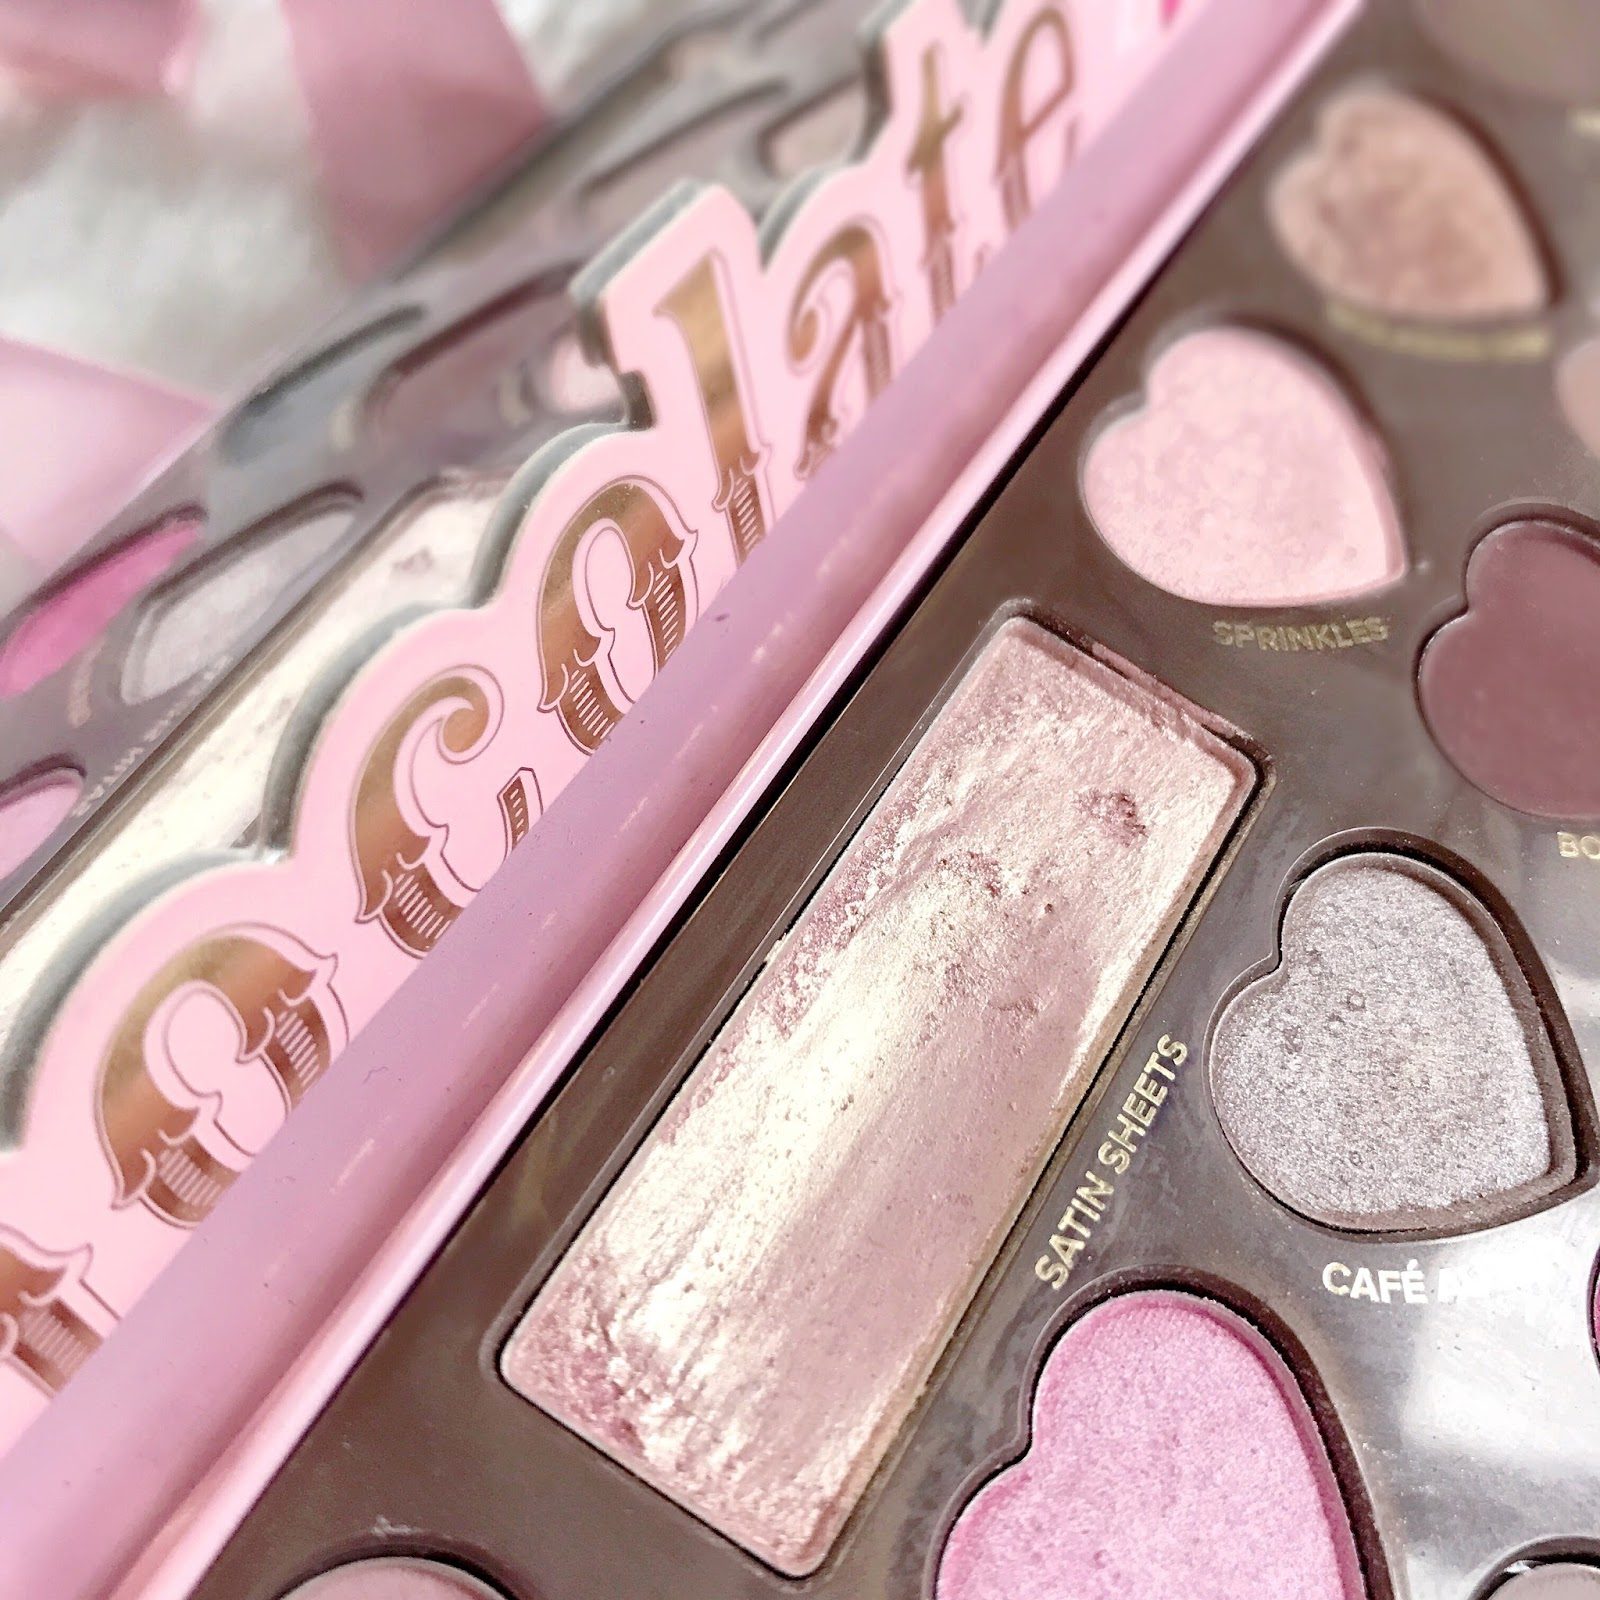 Four Champagne Pinks To Try | Too Faced Chocolate Bon Bons Satin Sheets